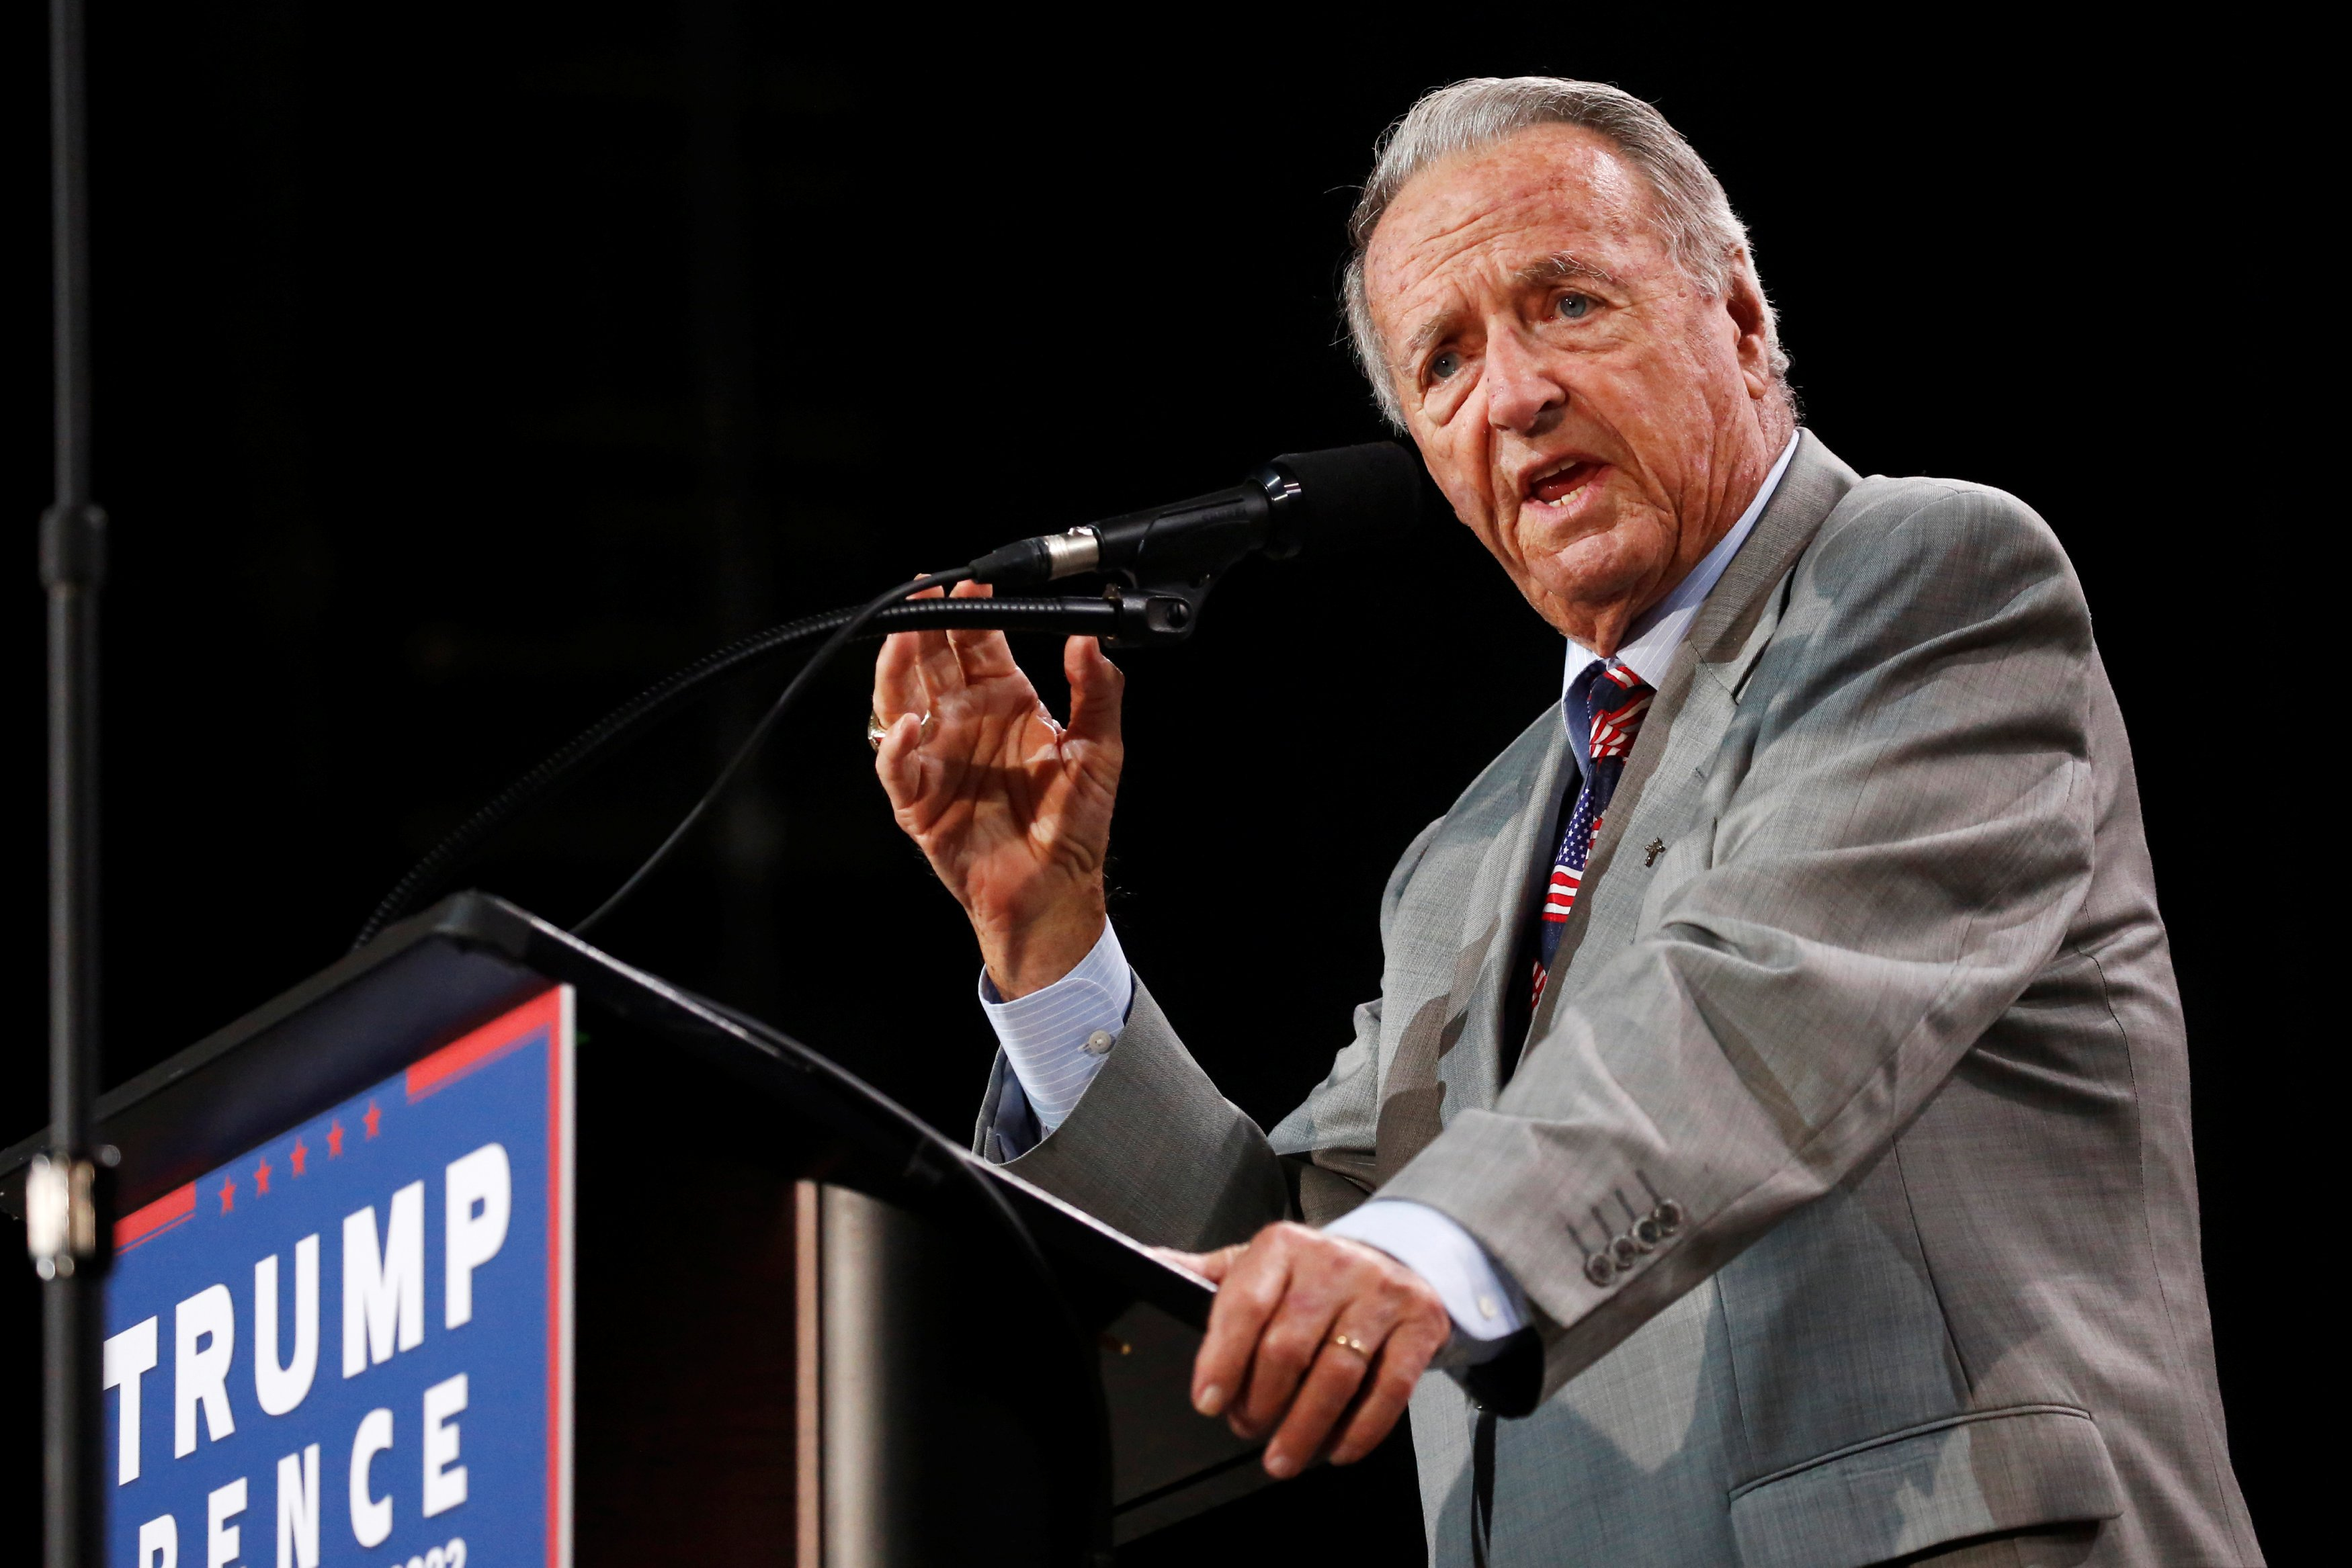 Former Florida State University football coach Bobby Bowden delivers remarks at a rally with Republican U.S. presidential nominee Donald Trump in Tampa, Florida, U.S. October 24, 2016. REUTERS/Jonathan Ernst